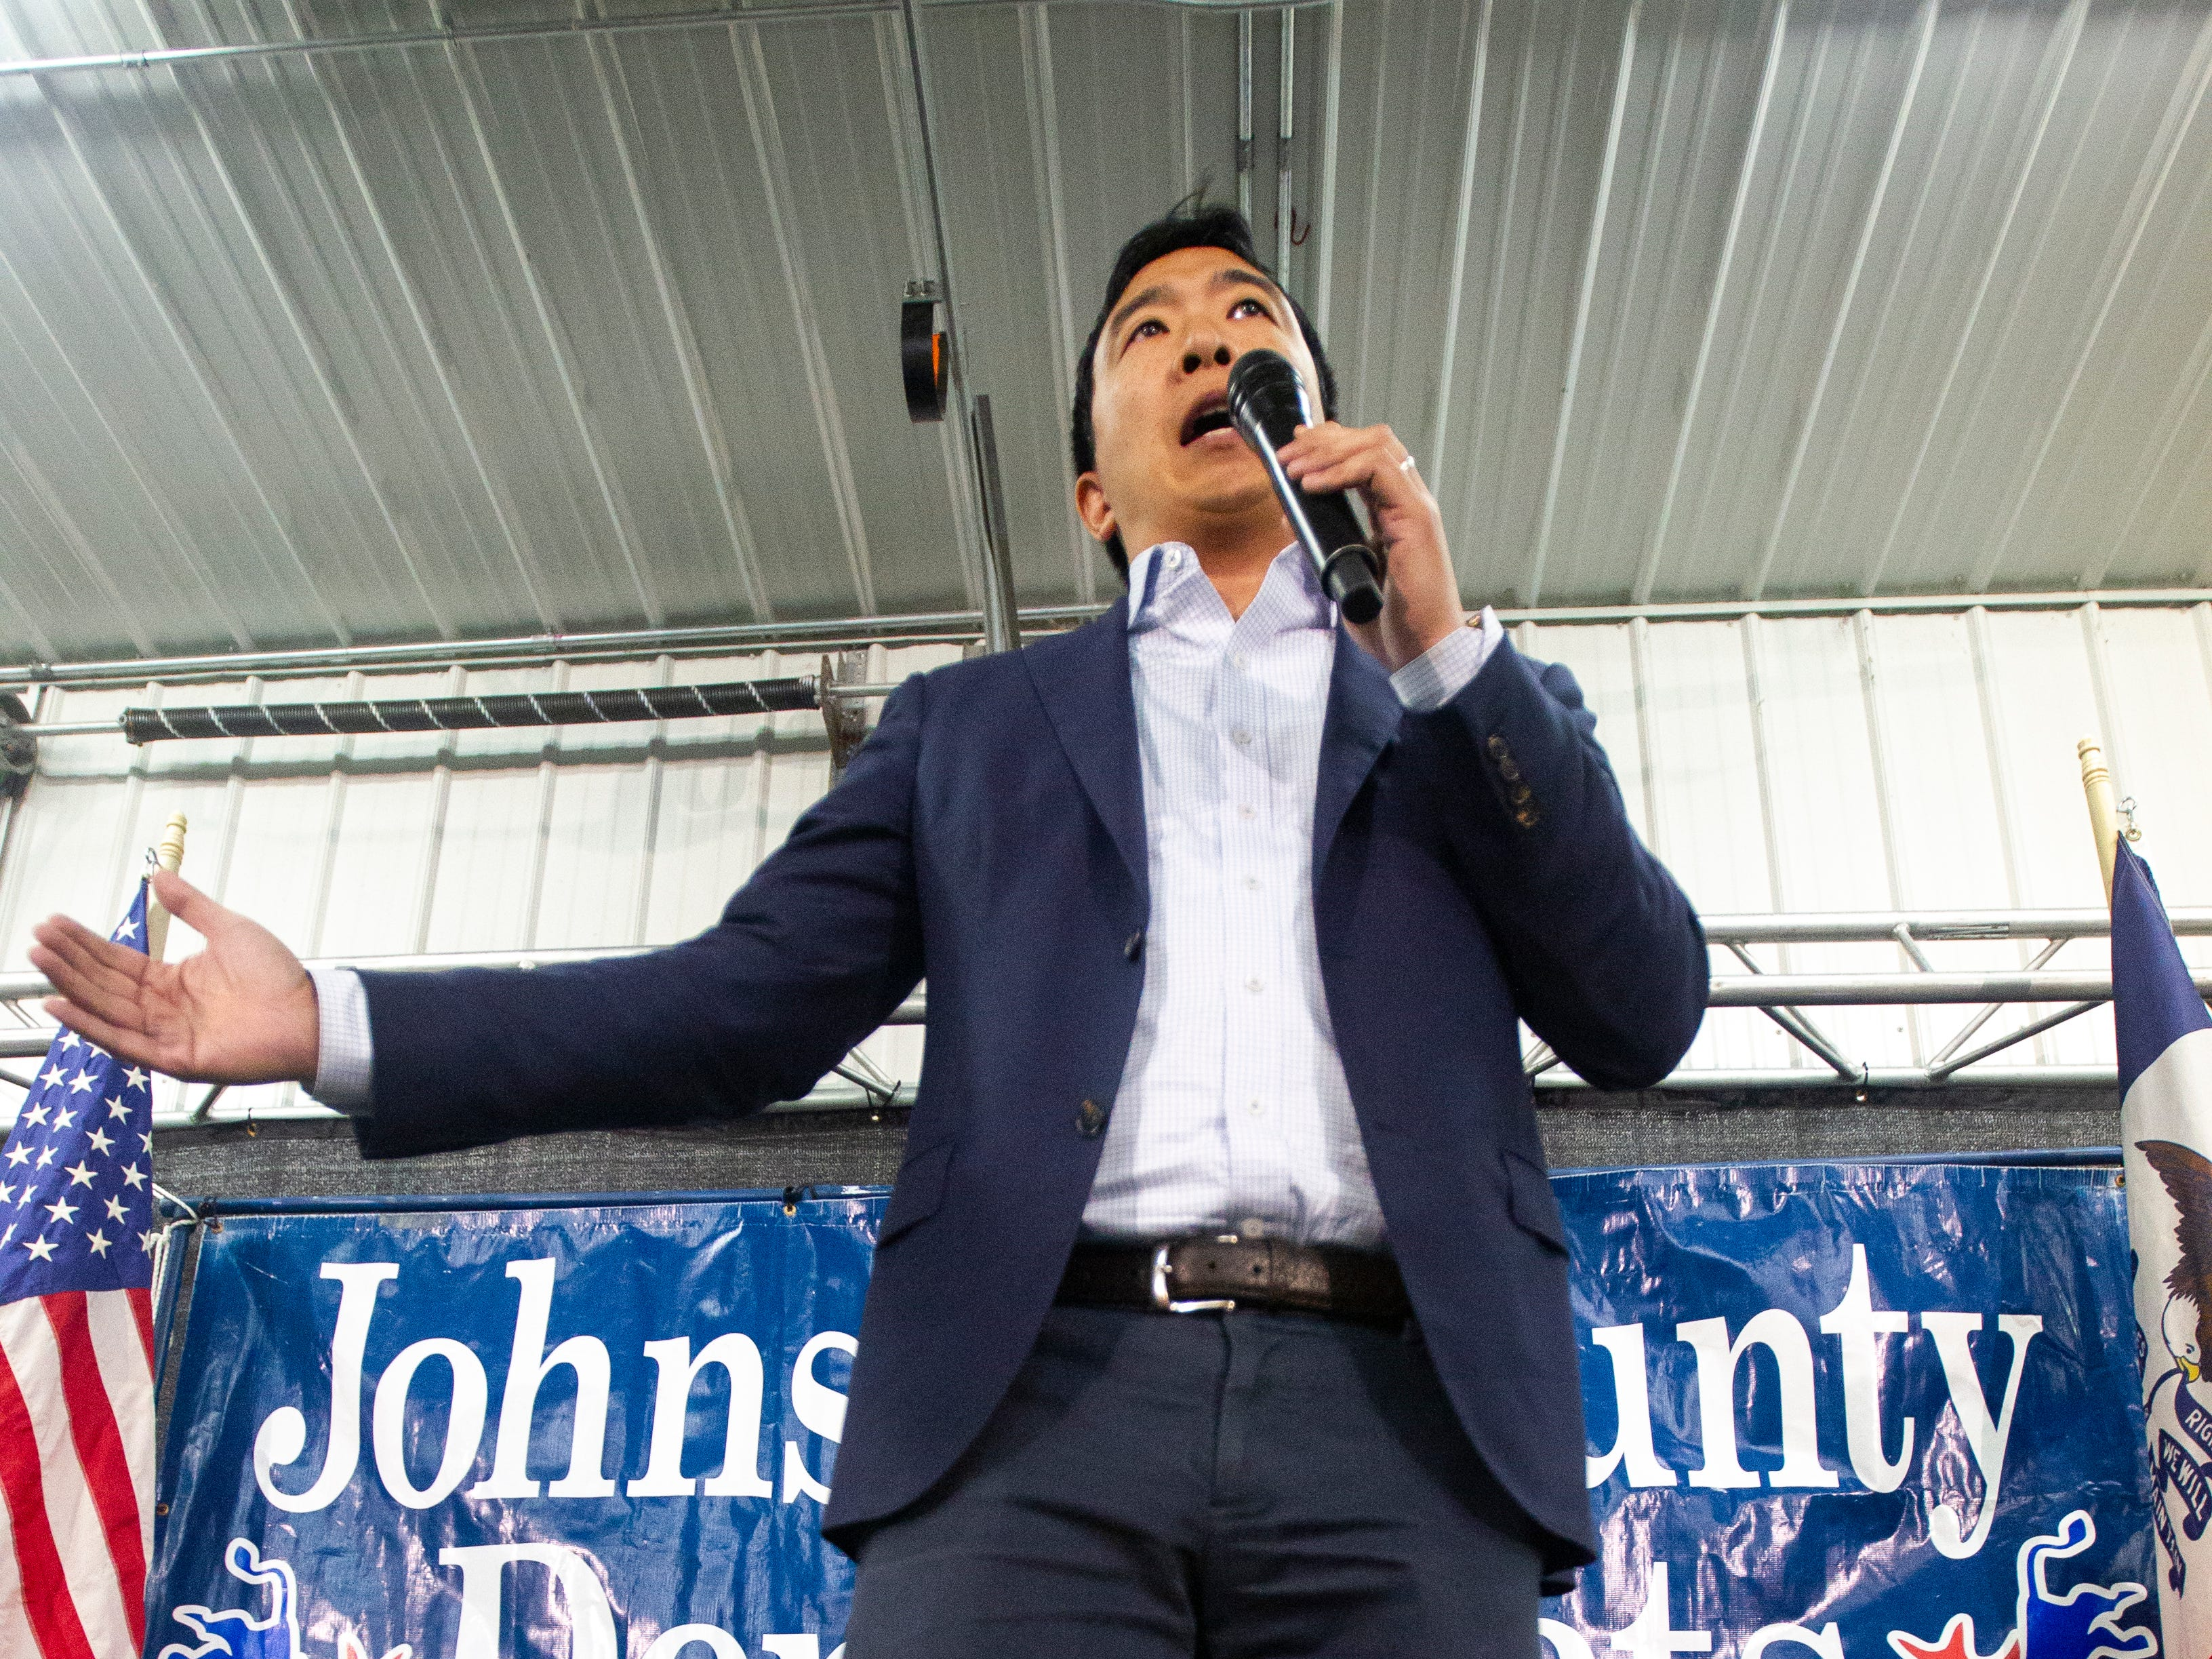 Andrew Yang, 2020 Democratic presidential candidate from Schenectady, New York, speaks during the Johnson County Democrats annual barbecue fundraiser on Sunday, Oct. 14, 2018, inside Building C at the Johnson County Fairgrounds in Iowa City.